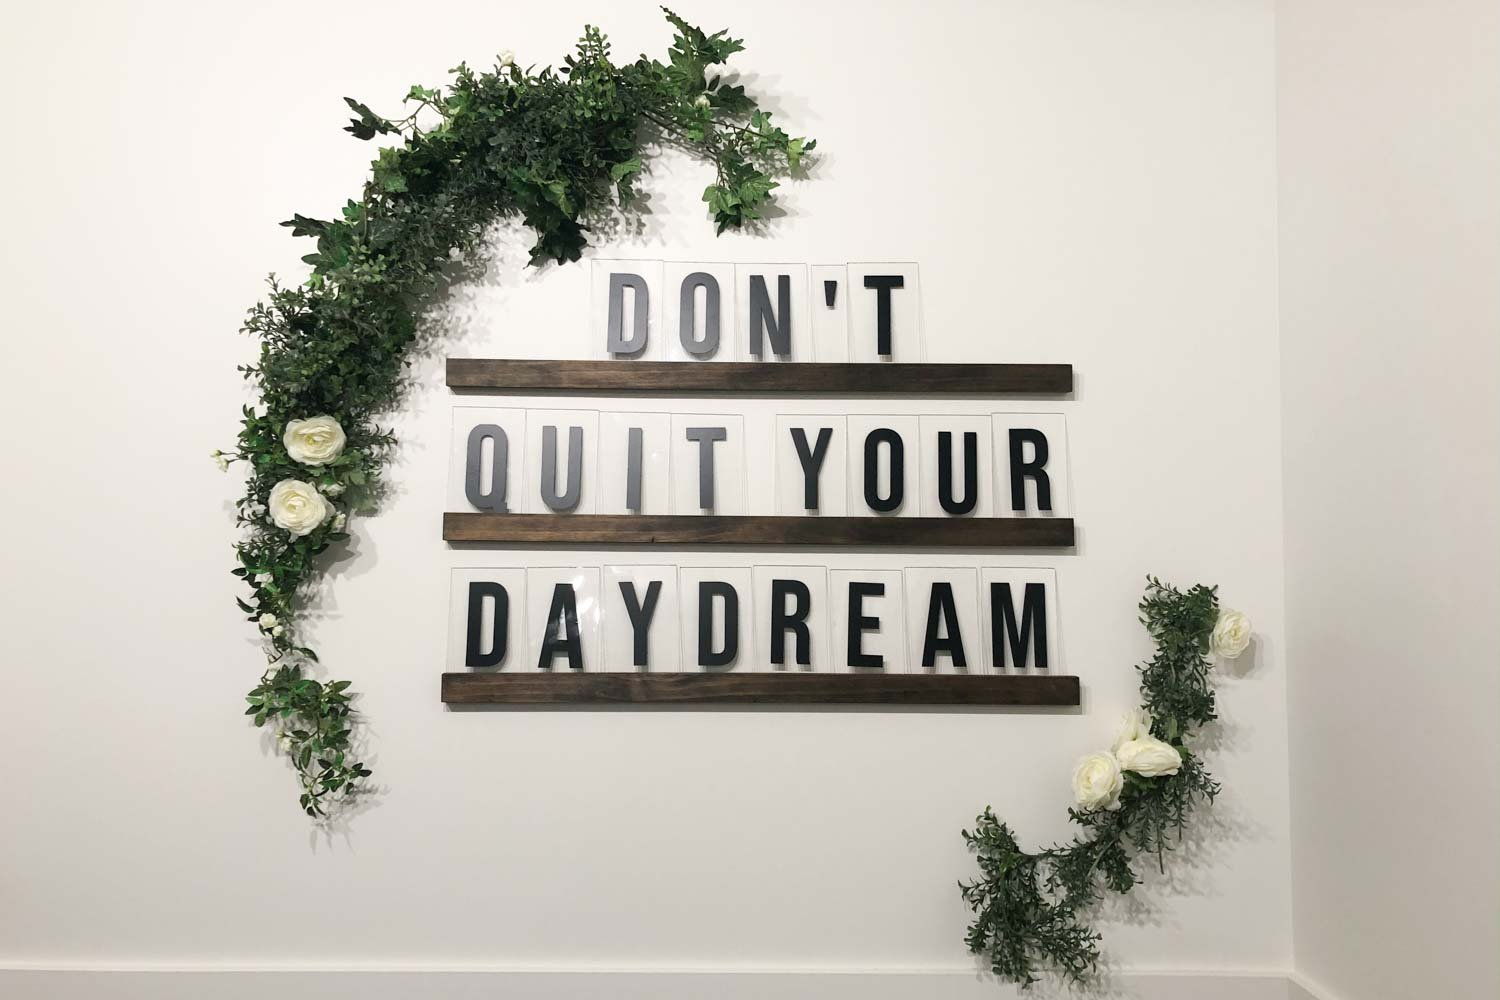 Easy DIY Oversized Letter Board Tutorial for Your Wall (with Phrase Ideas)